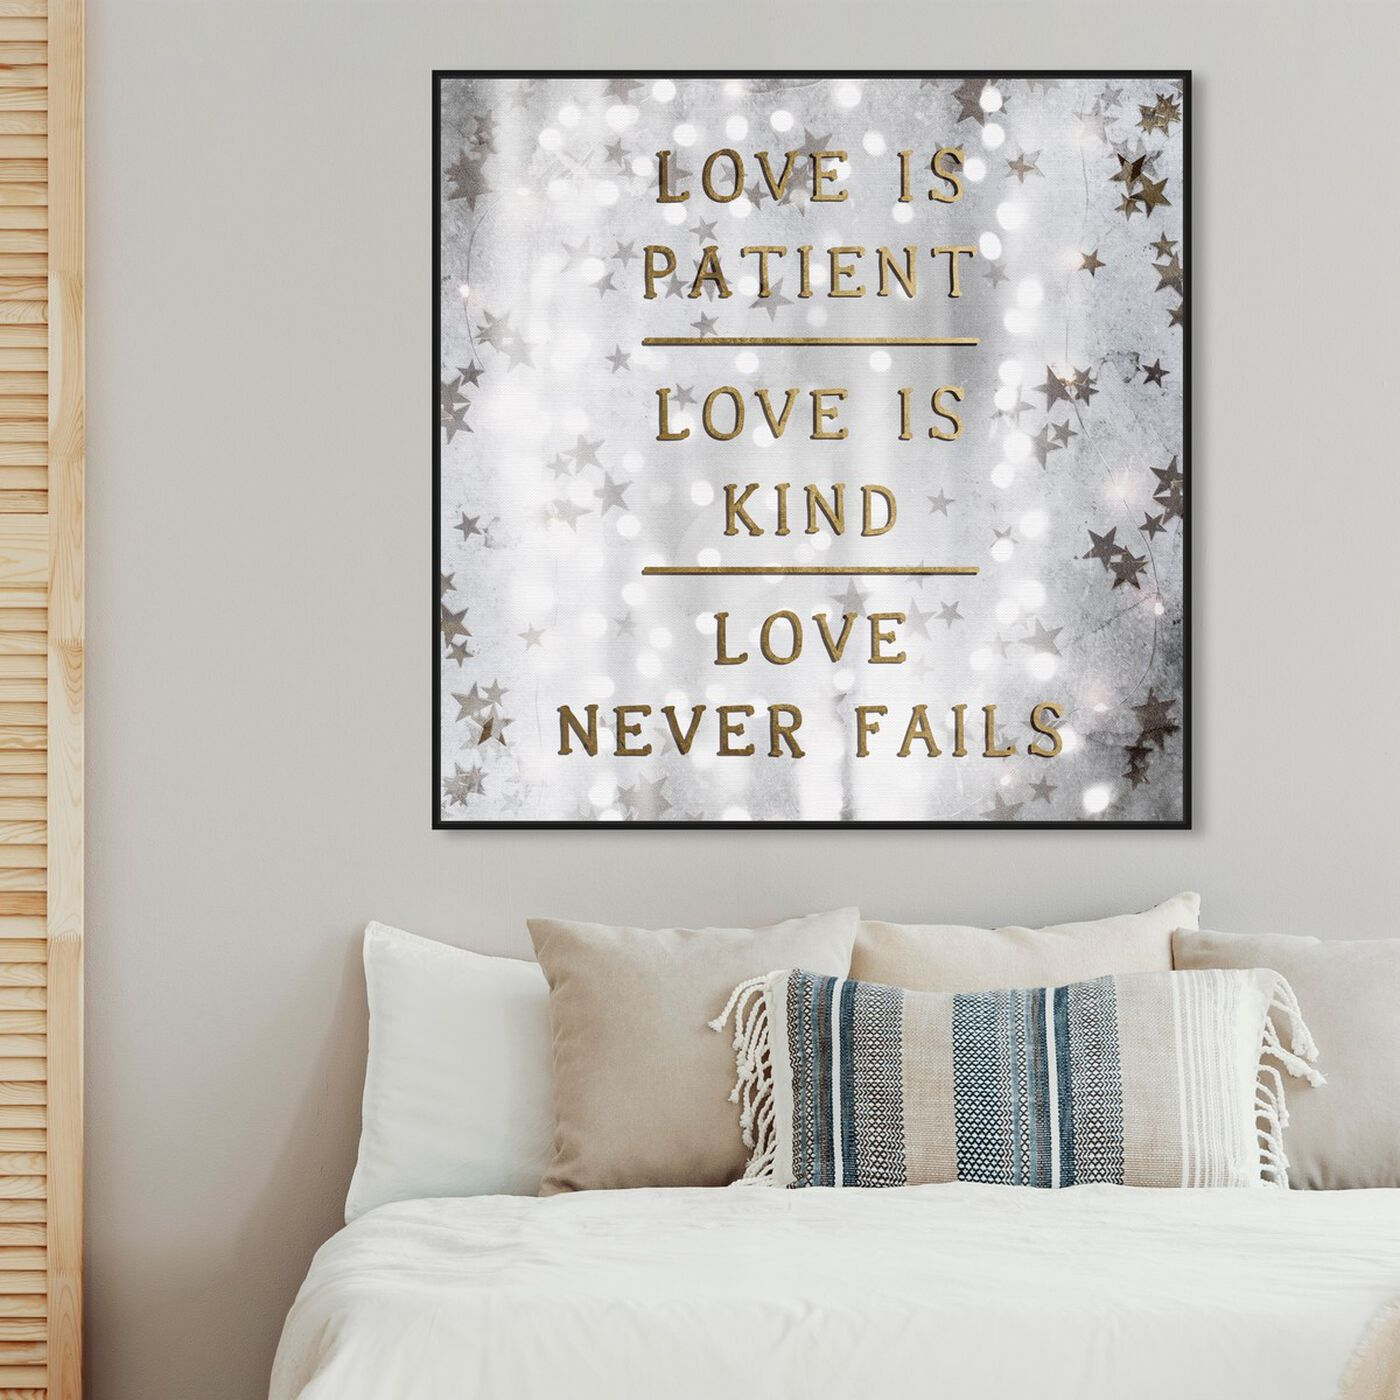 Hanging view of Love is Patient Love is Kind featuring typography and quotes and love quotes and sayings art.